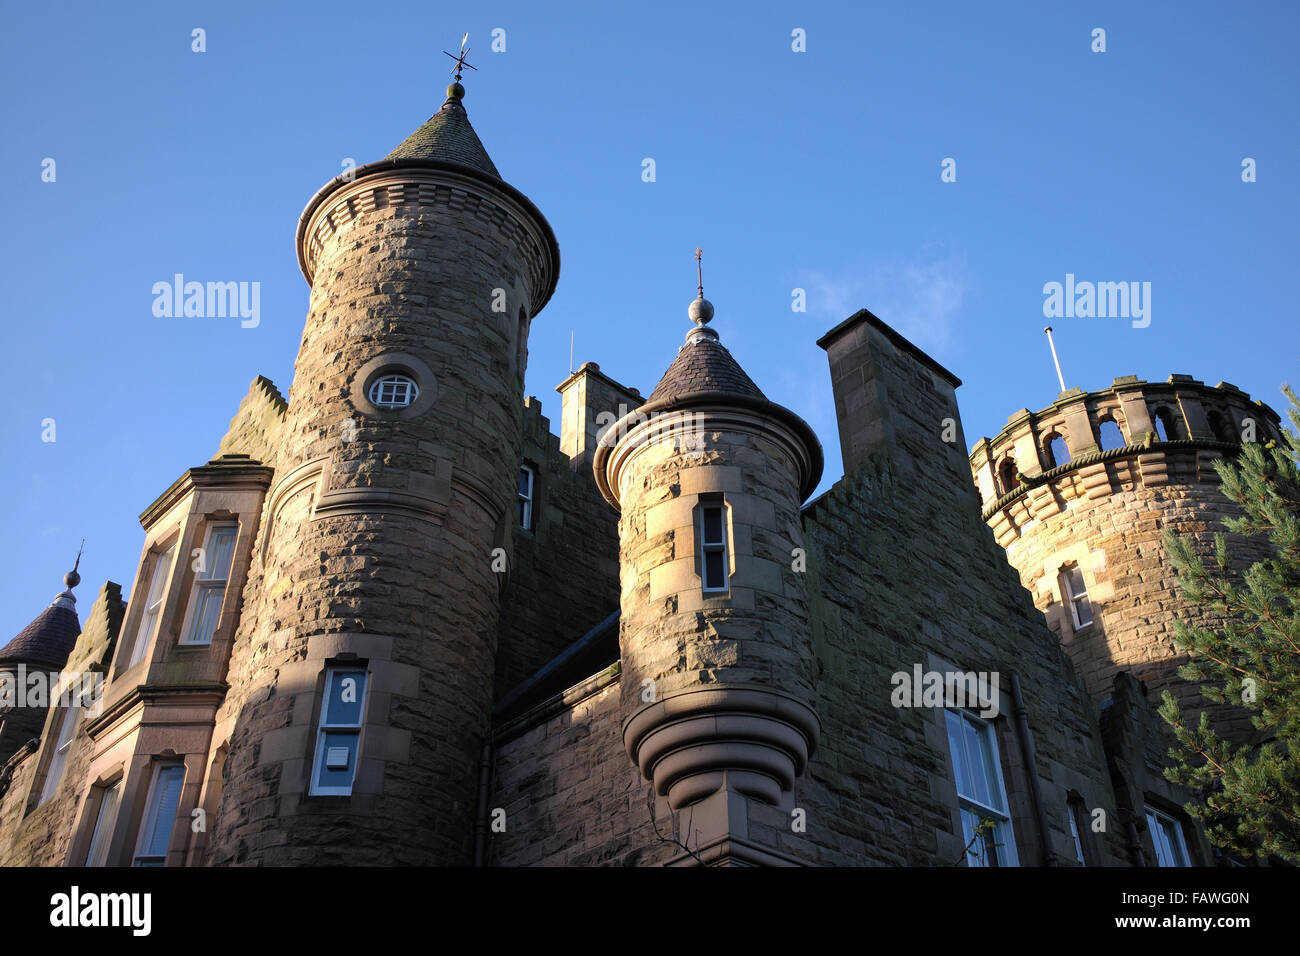 Sheriff Court House. Ettrick Terrace, Selkirk, Scotland - Stock Image